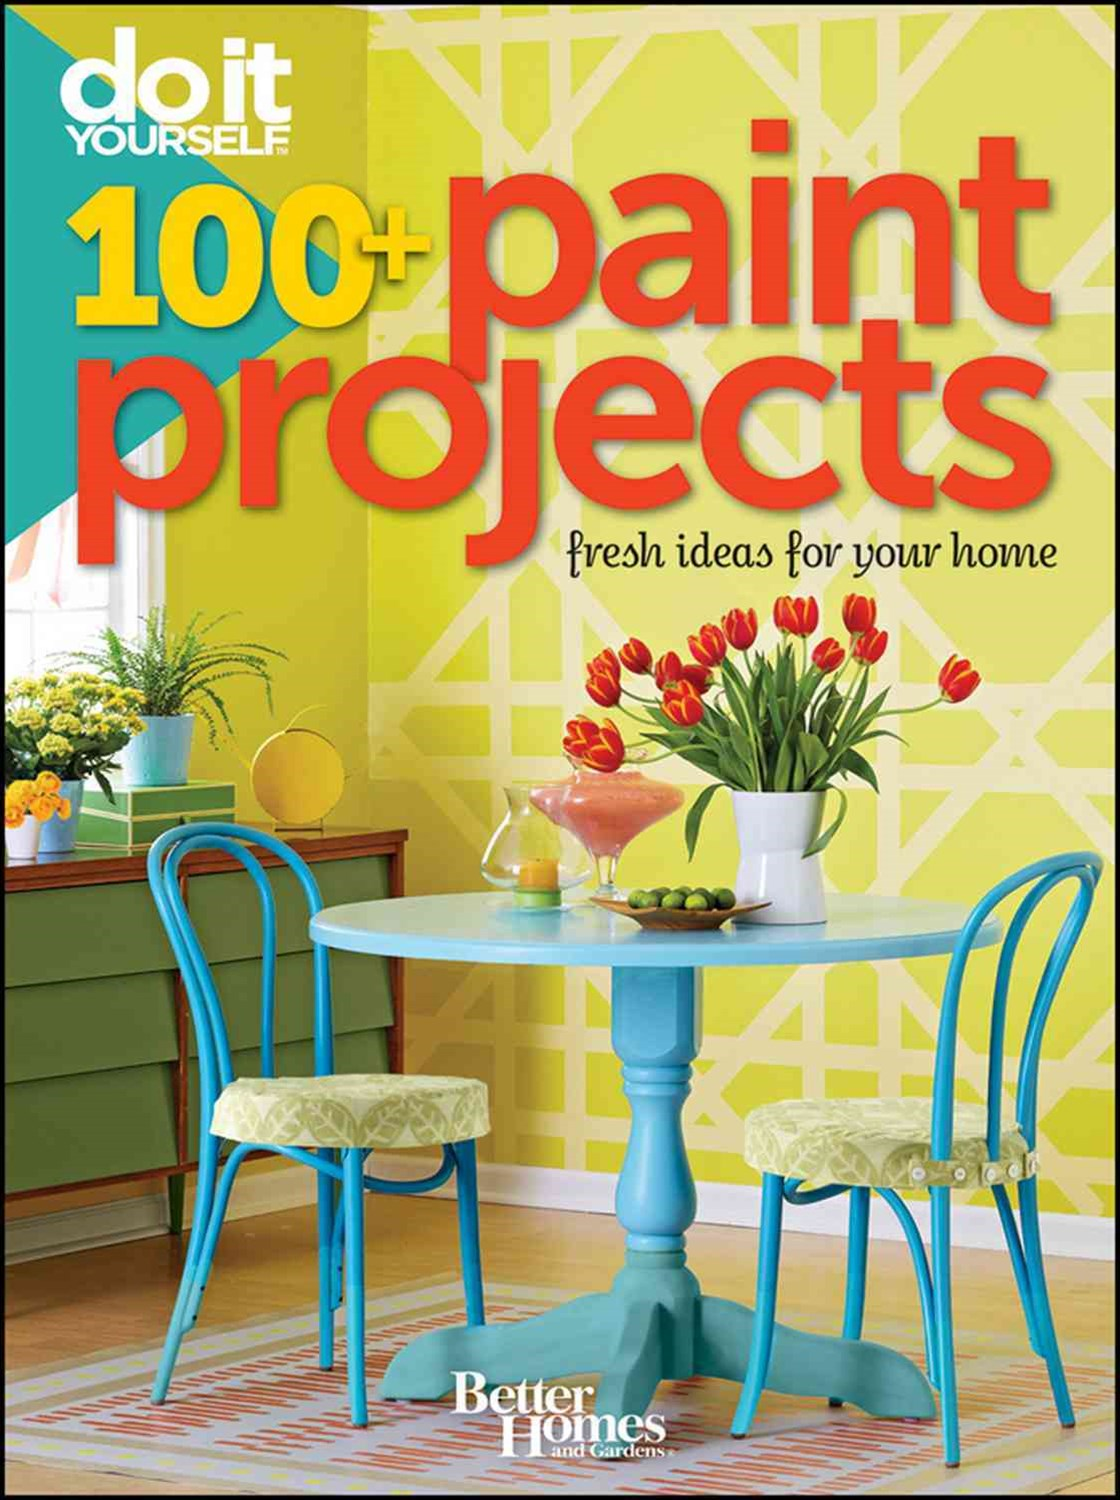 Do It Yourself 100 Paint Projects: Better Homes and Gardens